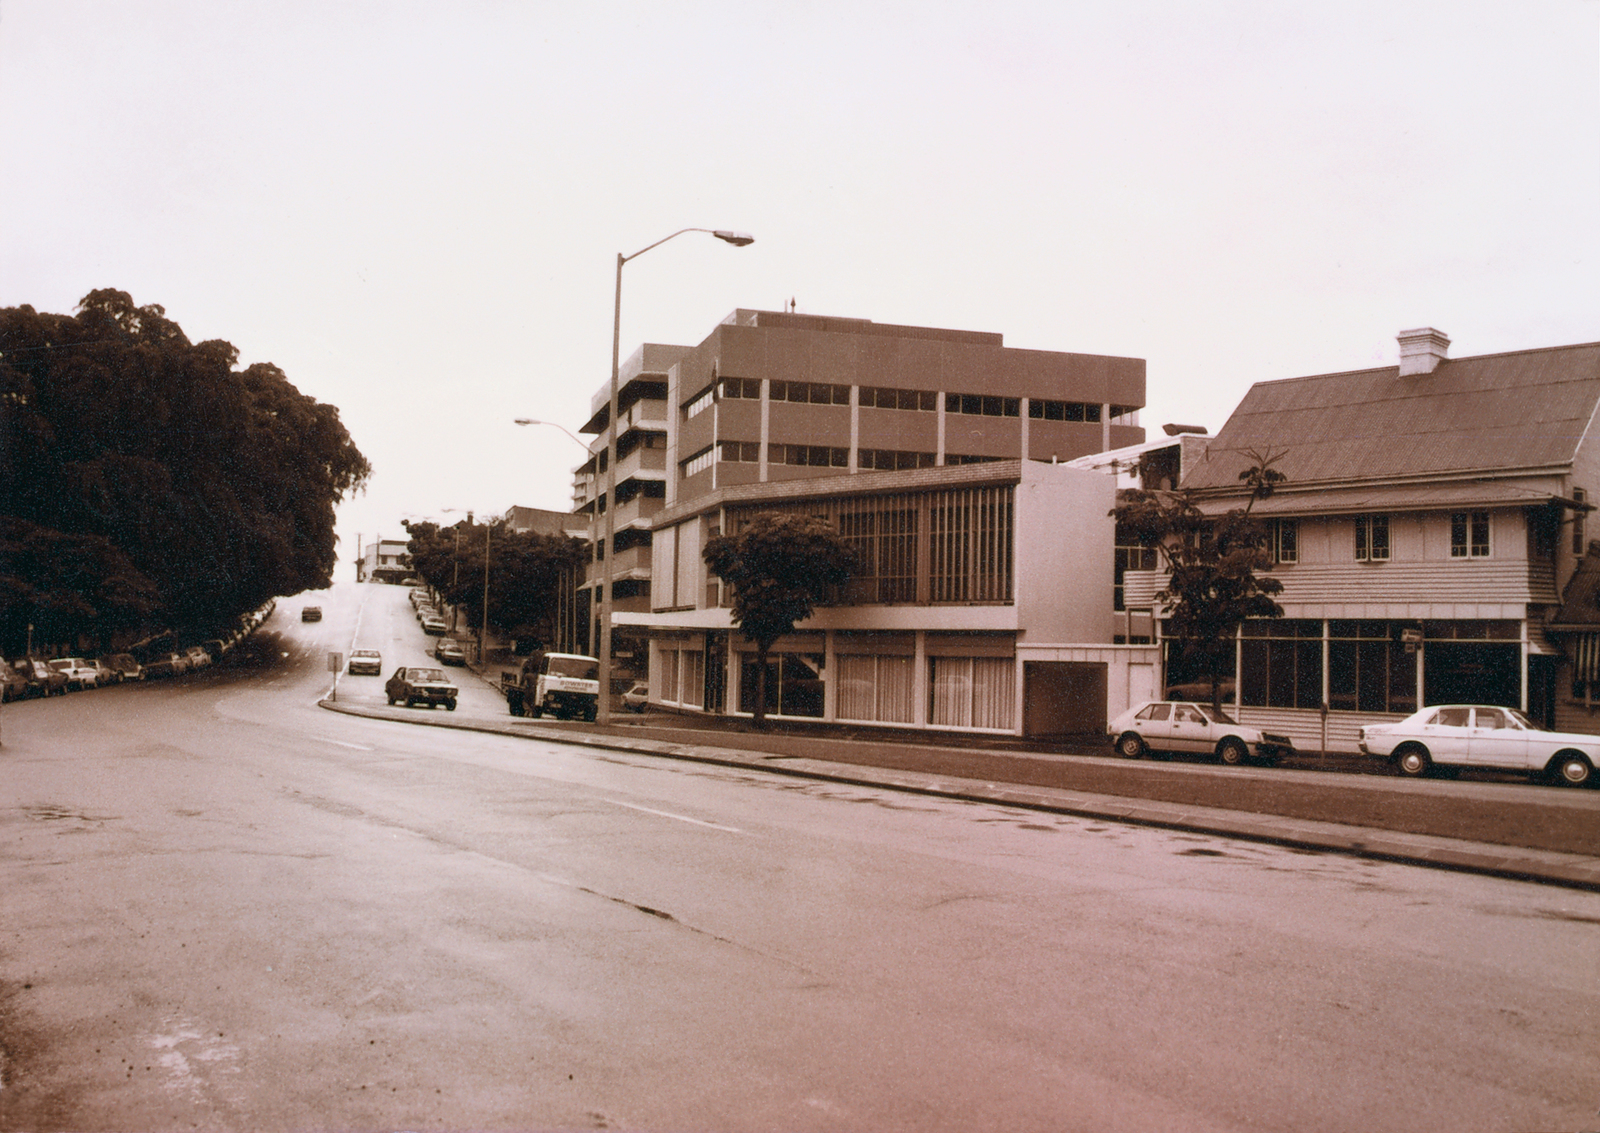 Brisbane - Consulate Office Building - 1983